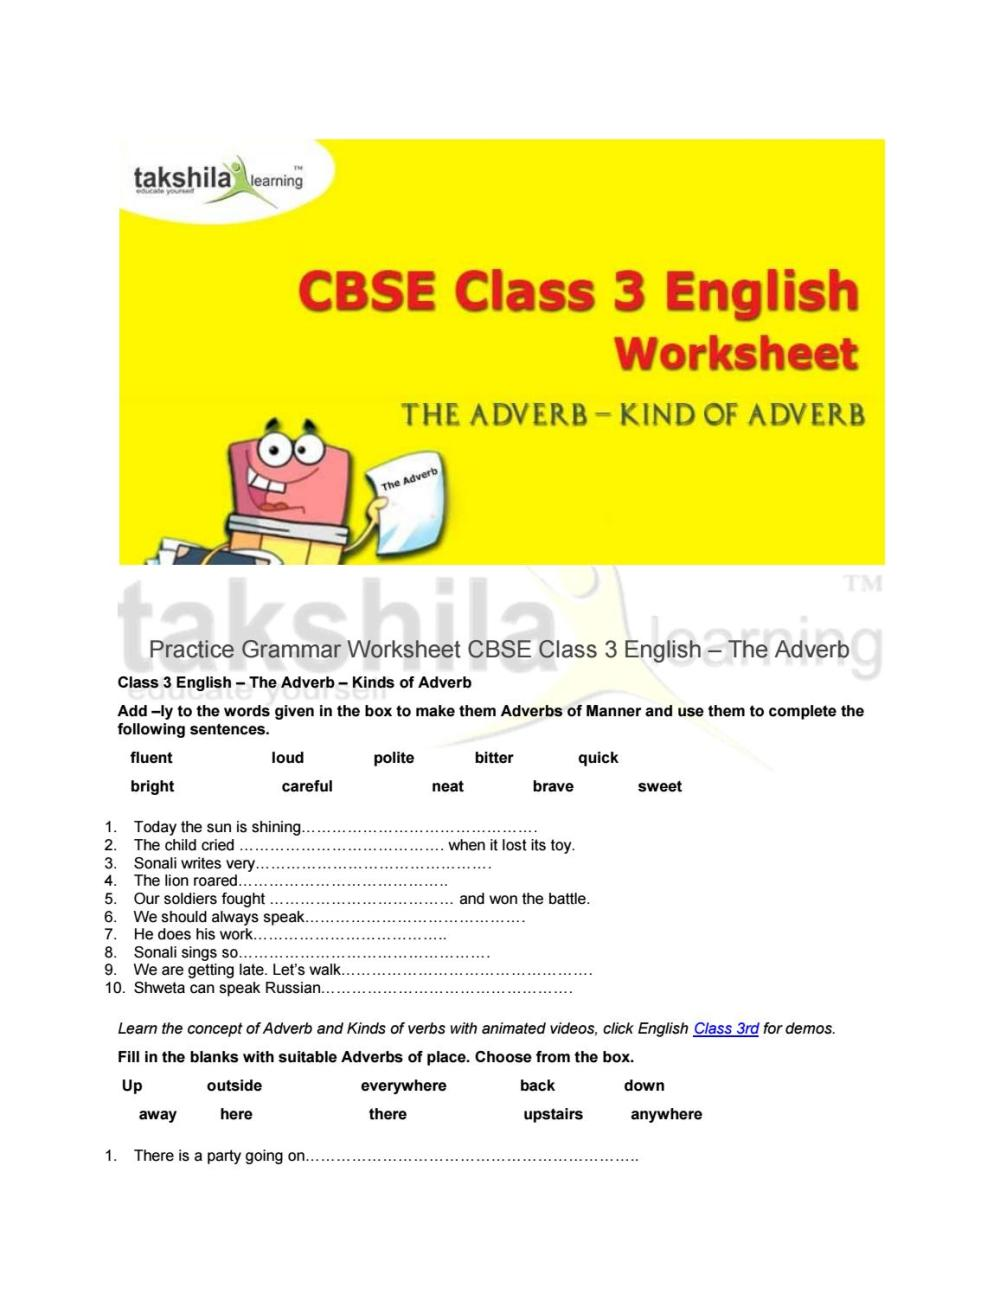 medium resolution of Practice grammar worksheet for cbse class 3 english the adverb by Takshila  learning   Online Classes - issuu